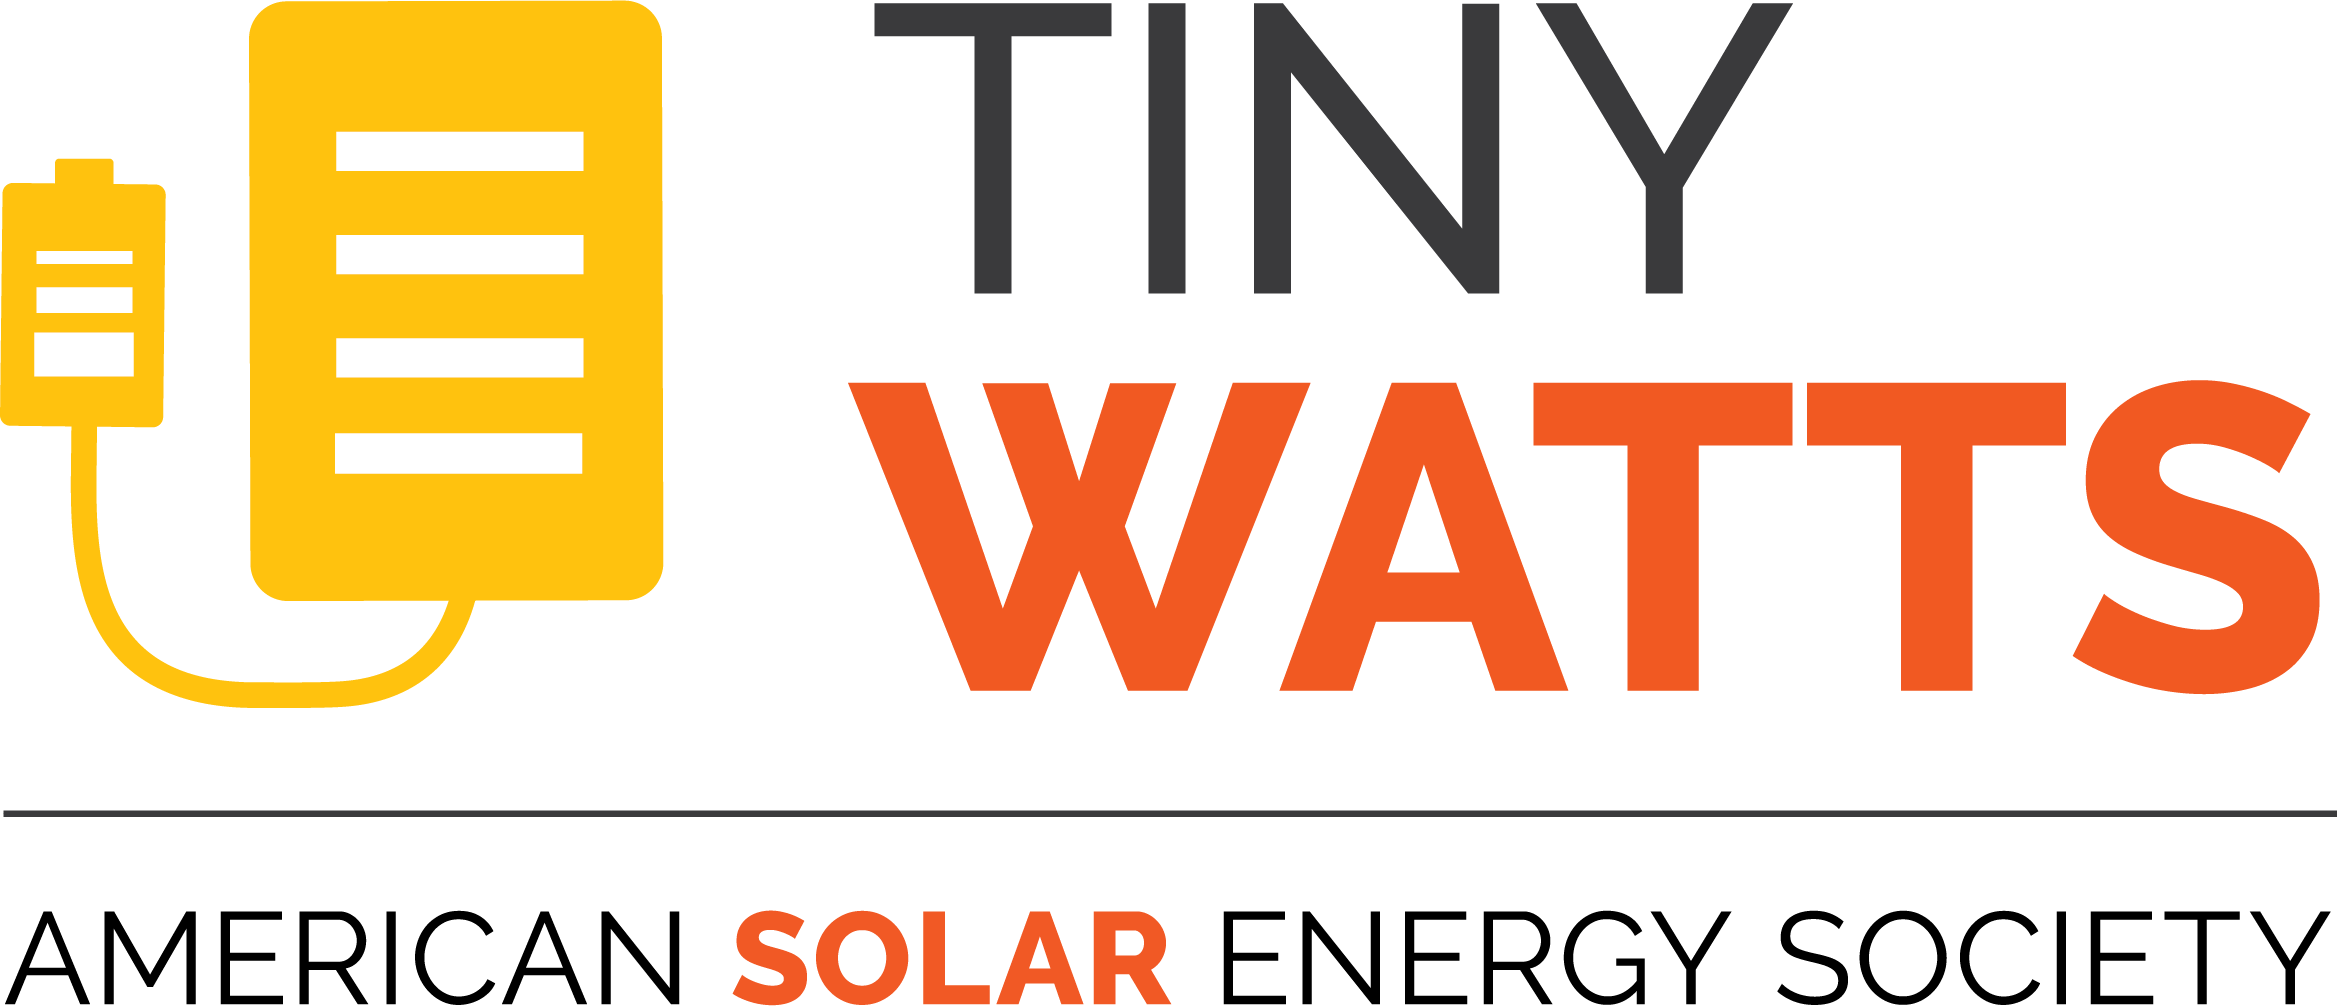 Tiny Watts logo